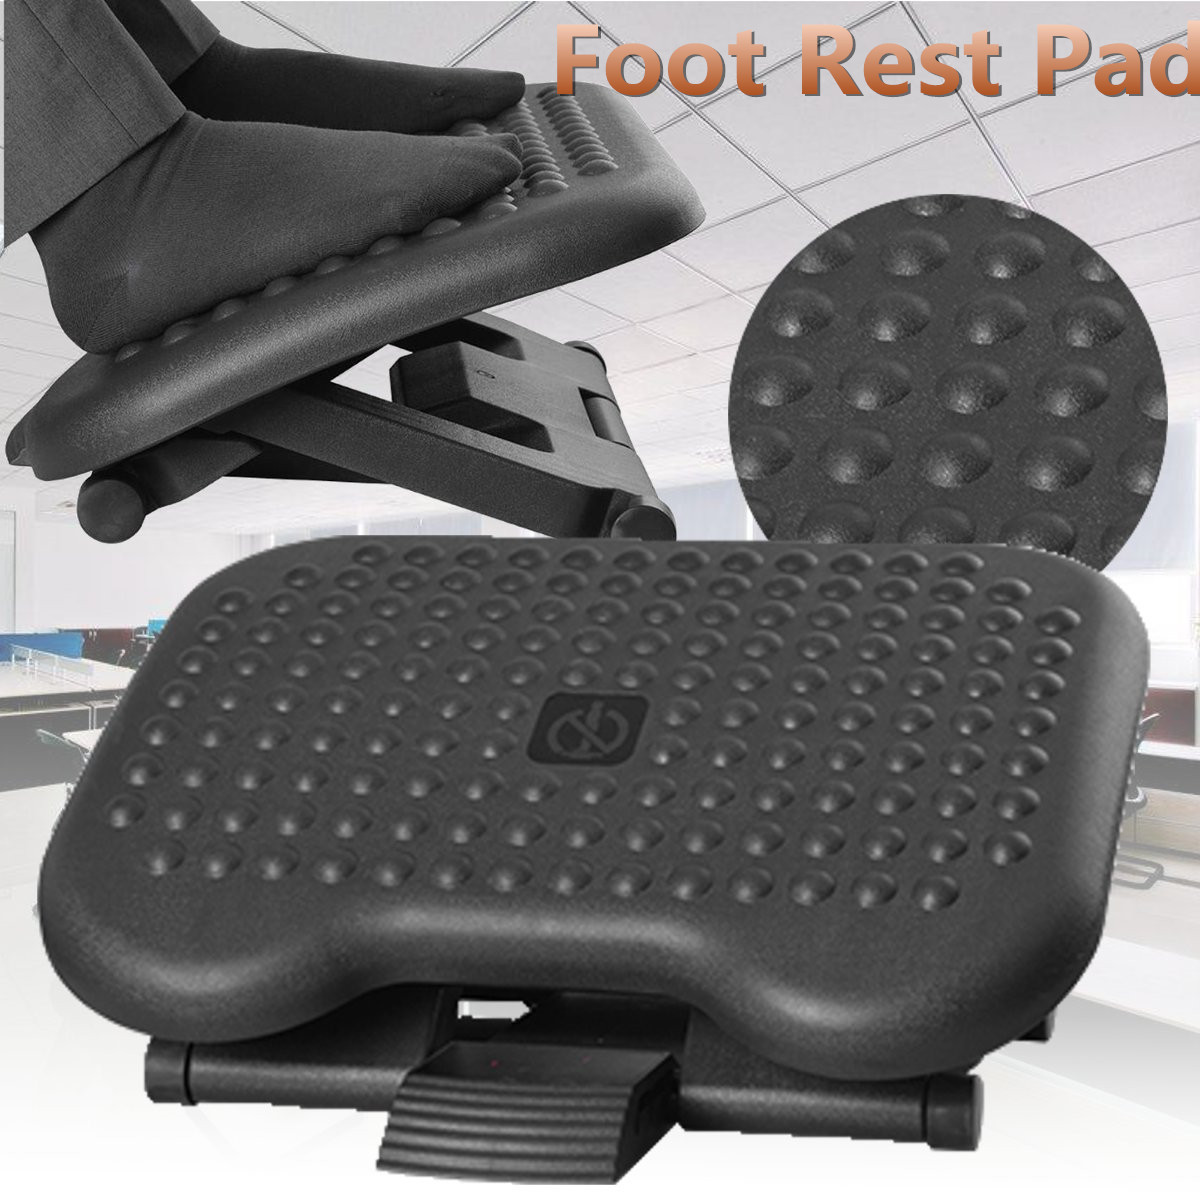 Adjustable Tilting Footrest Under Desk Ergonomic Massager Multifunction Foot Rest Pad Footstool Home Office Health Care Black